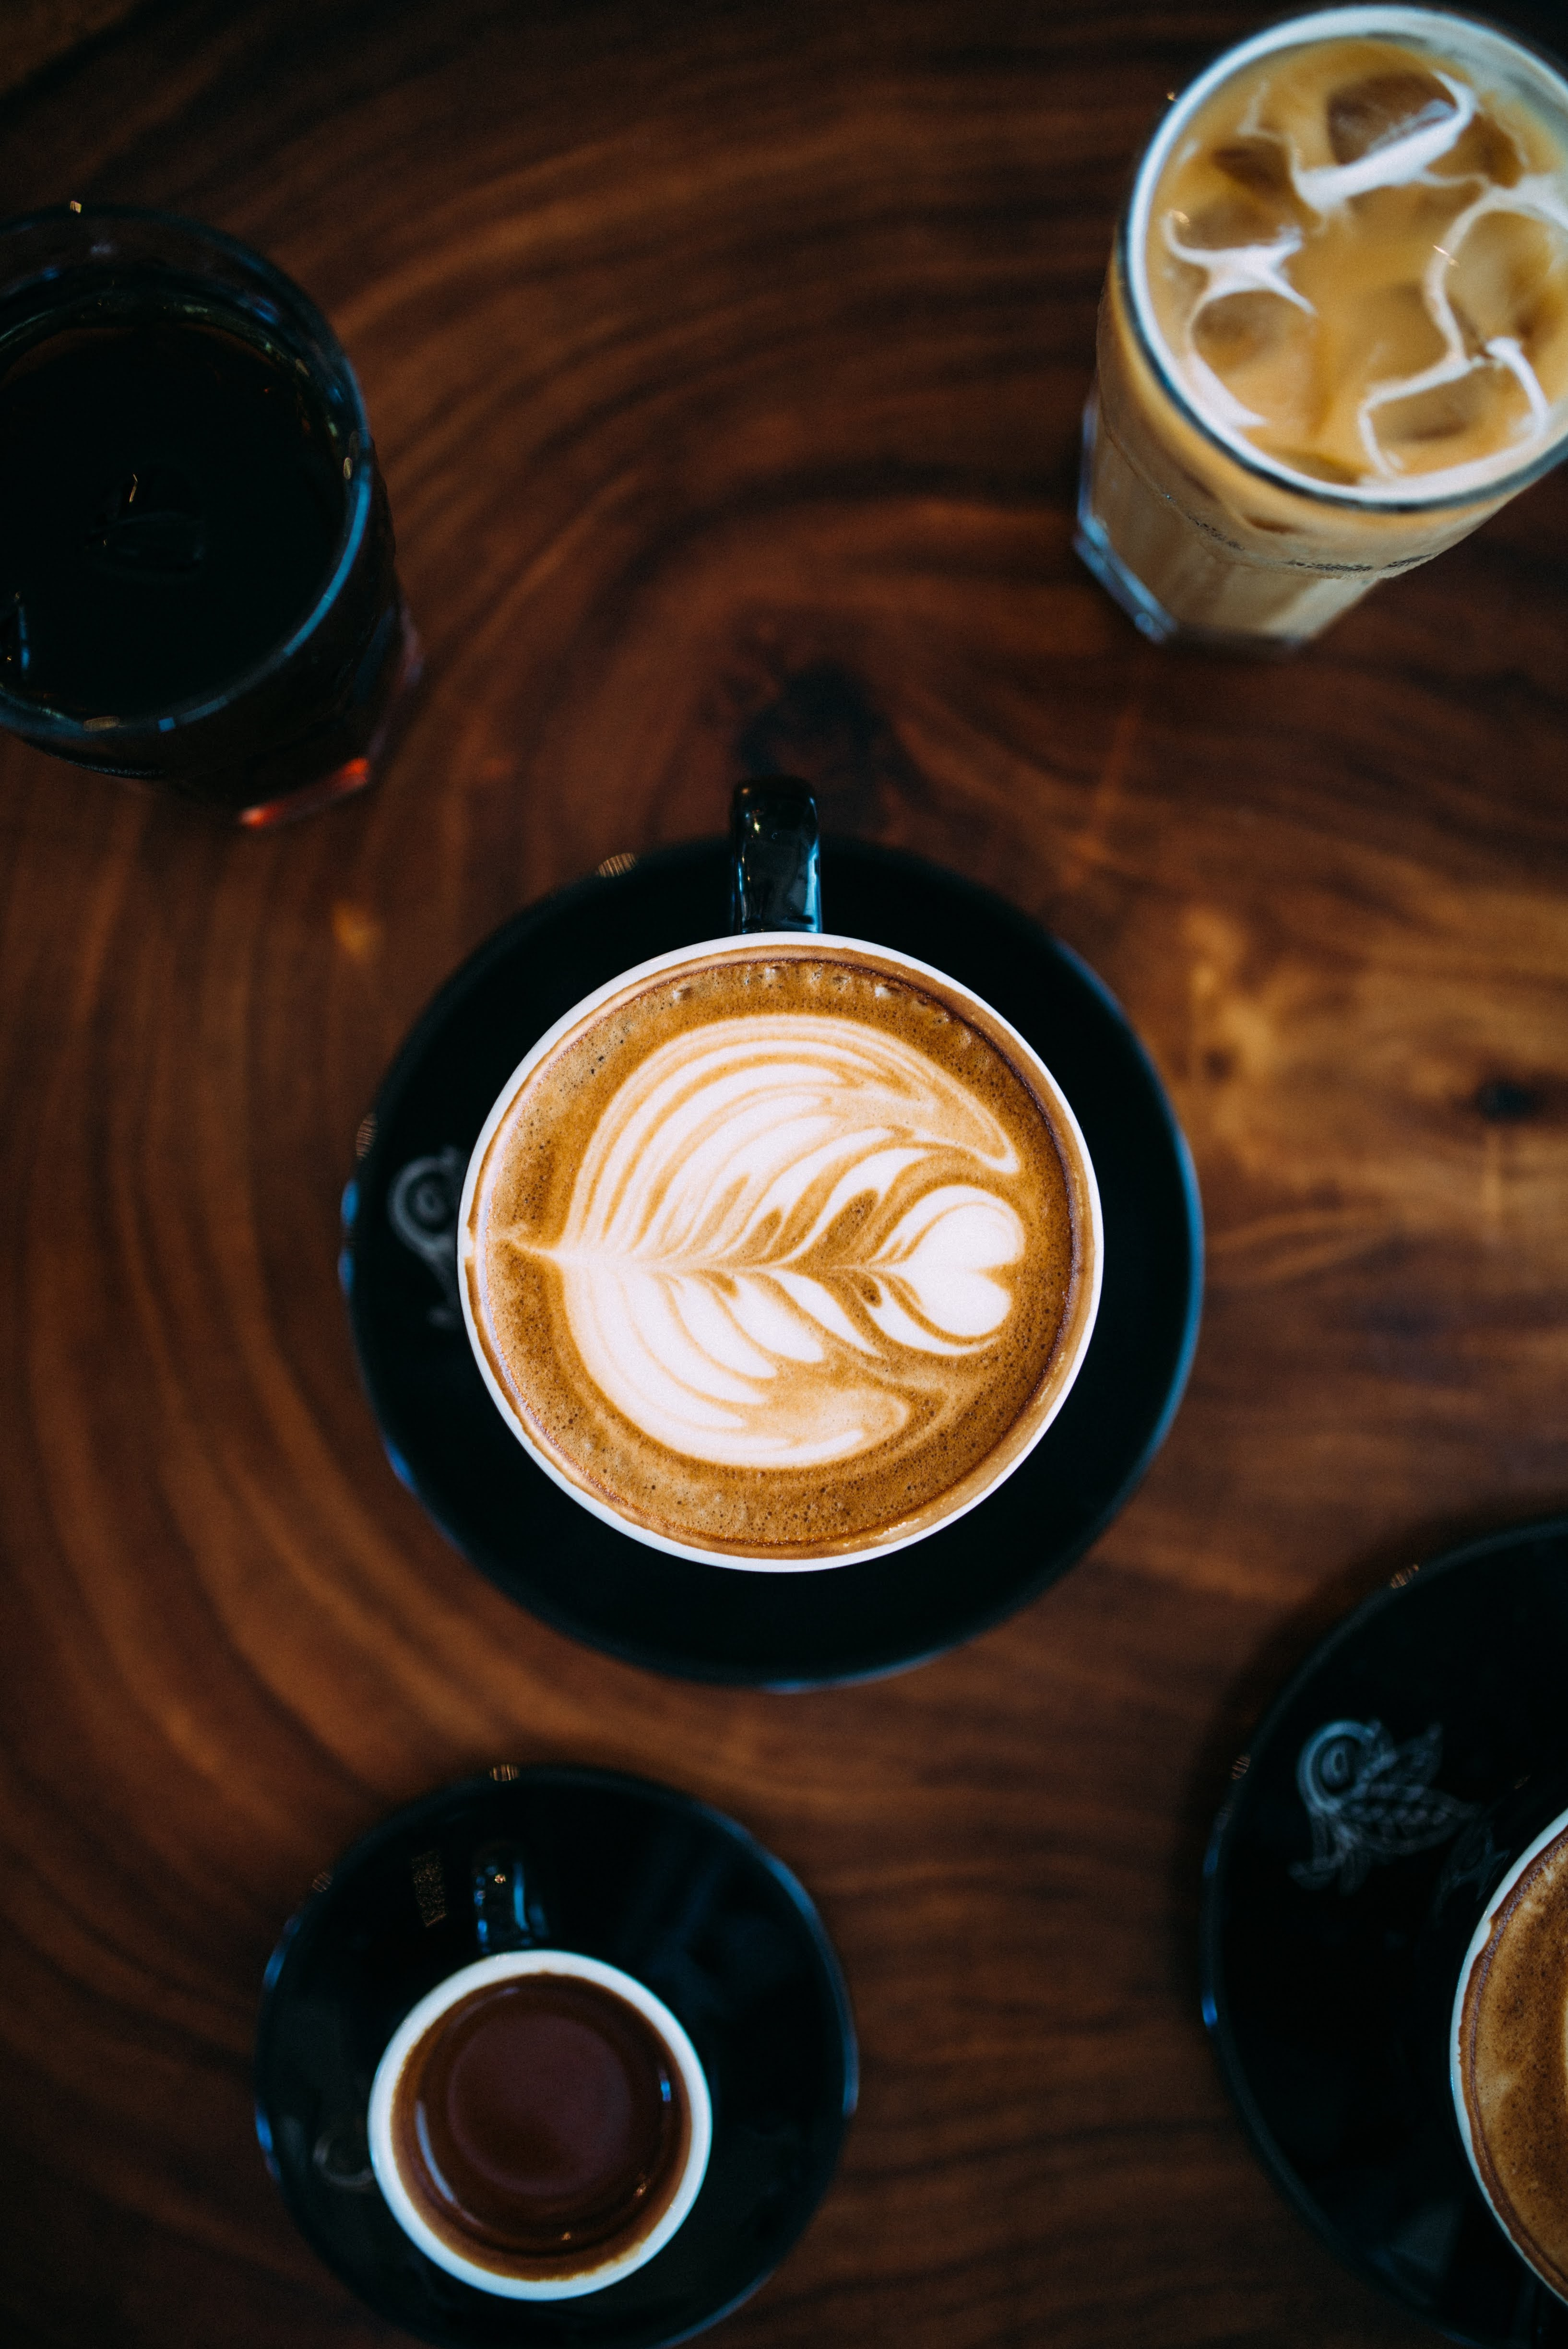 Coffee Cup with Milk Frothed on Brown Tabletop | Photo by Blake Wisz via Unsplash